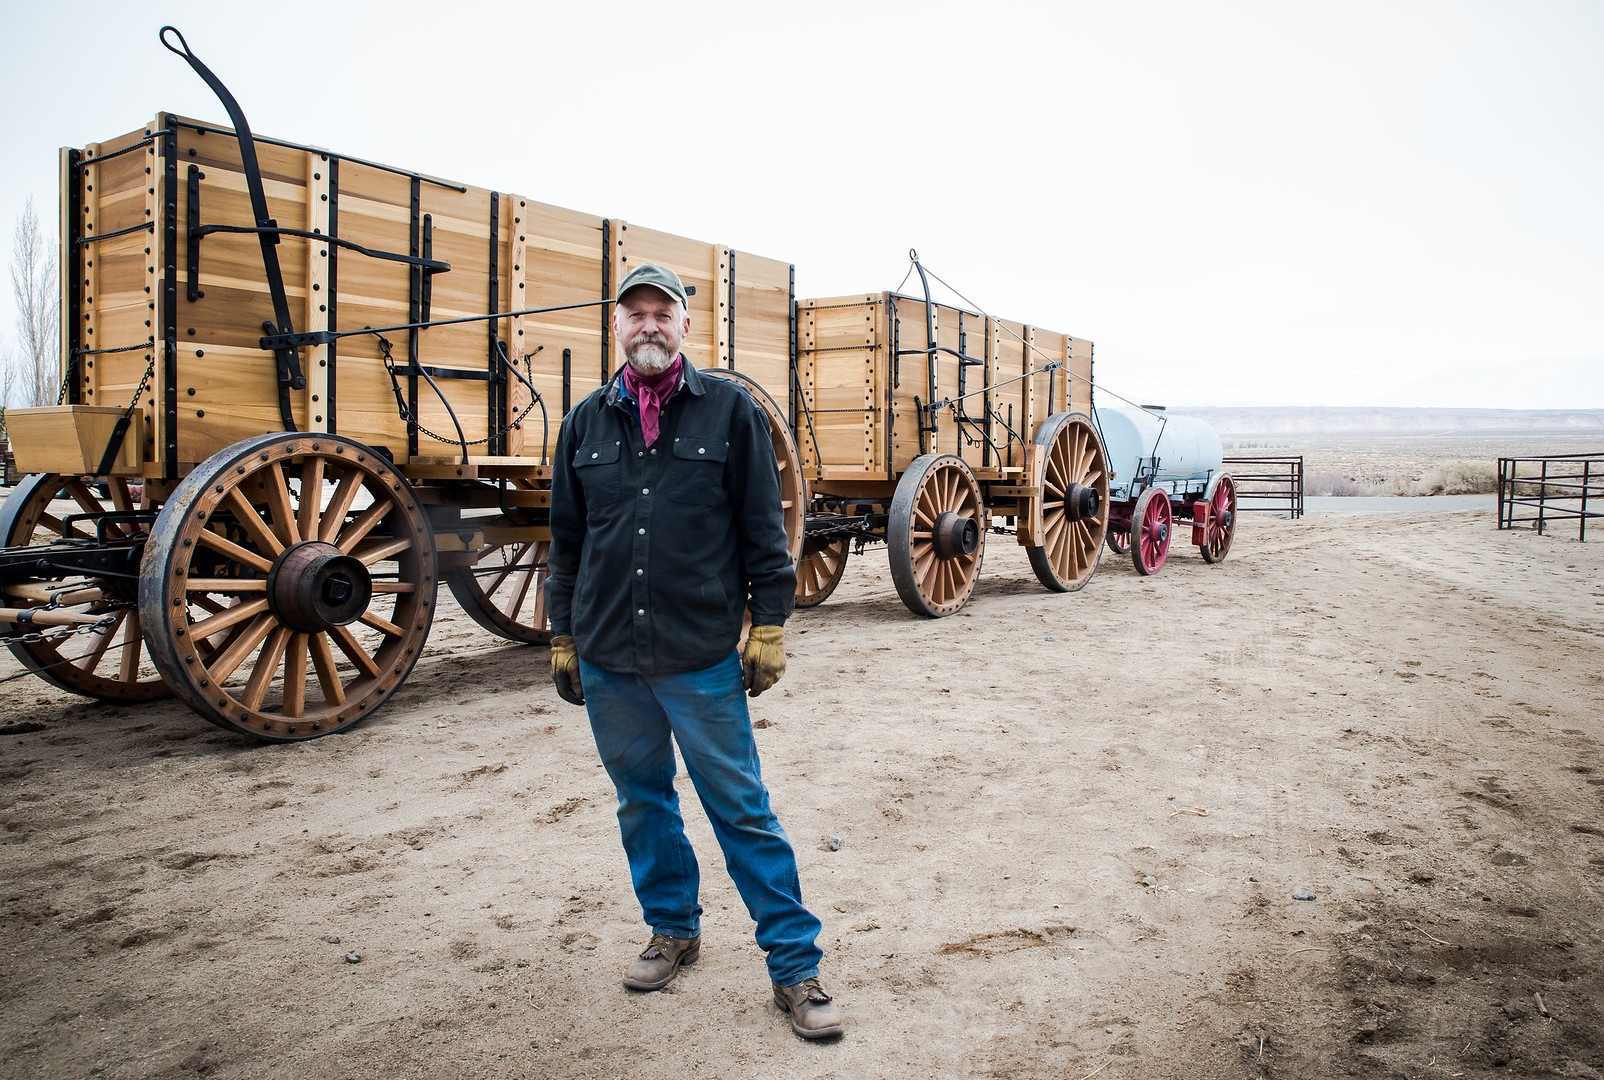 1880s Style Wagon Building Of The 20 Mule Team Borax Wagons At